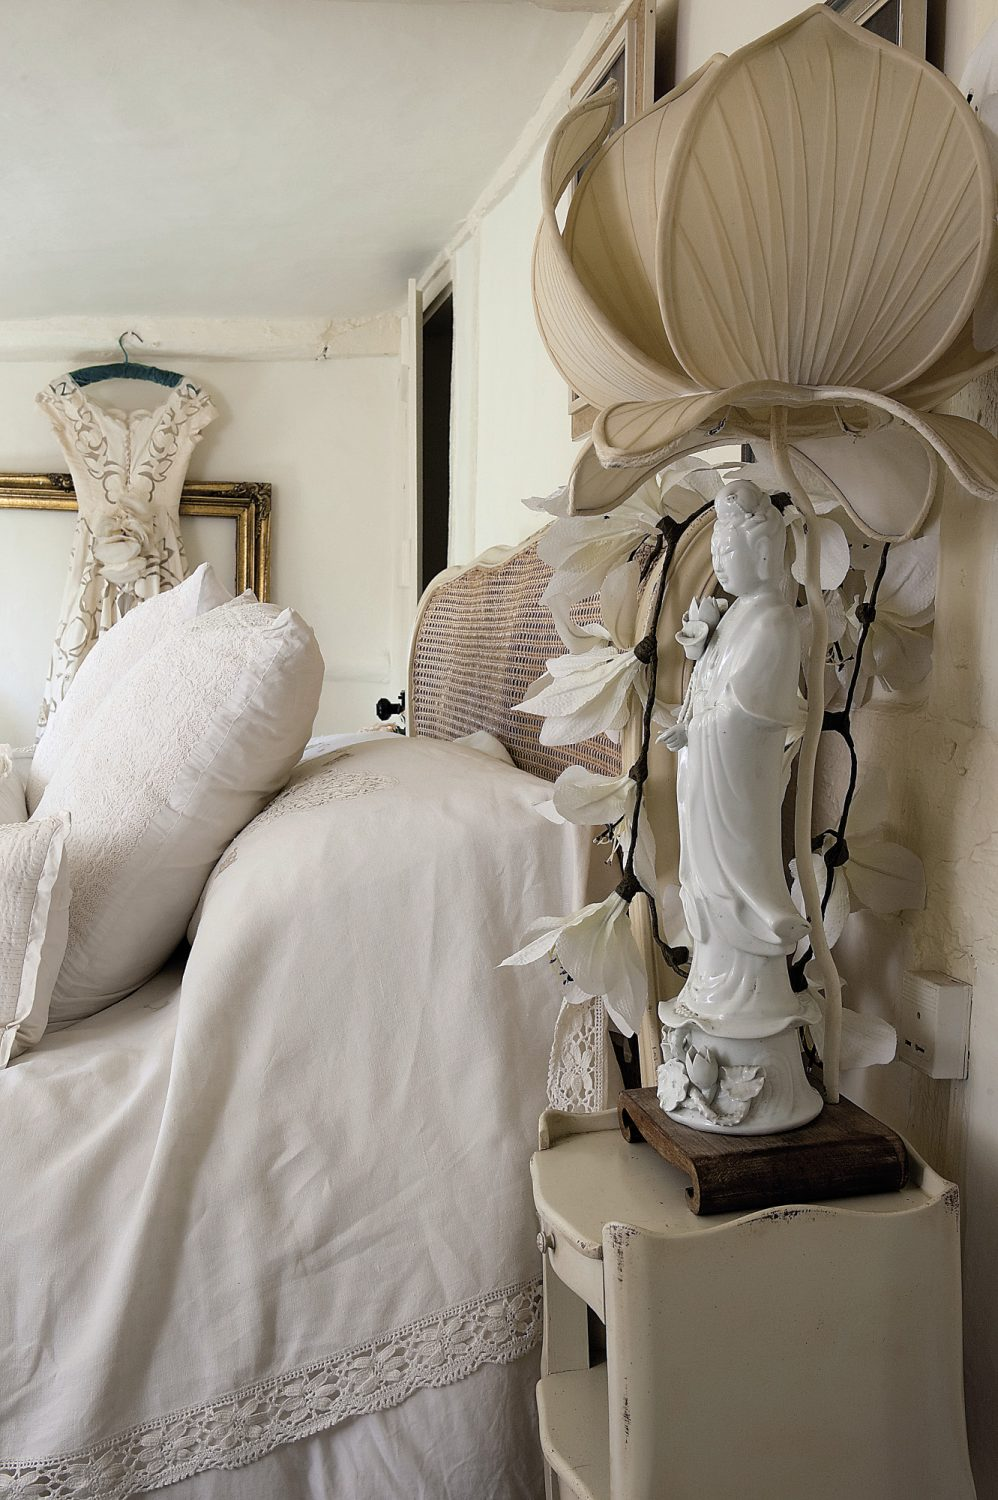 In the second bedroom again there are plenty of decorative flourishes. Ornate gilded and mirrored sconces hang above an exuberantly carved console table. Embroidered shawls cover the radiators and a vintage cutwork wedding dress is displayed on one wall